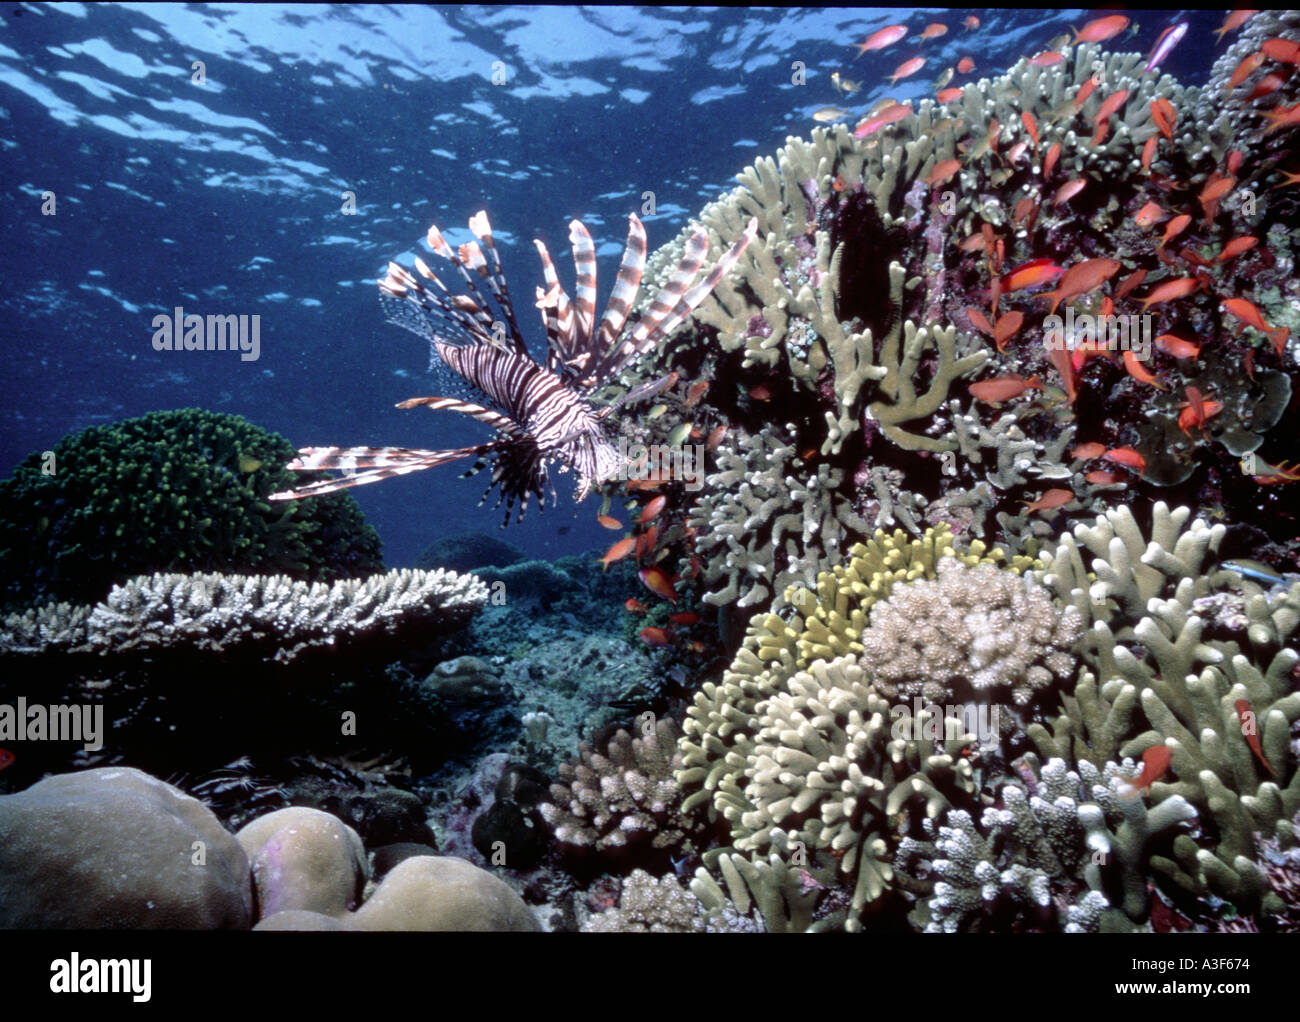 underwater, Lionfish in the corals Stock Photo